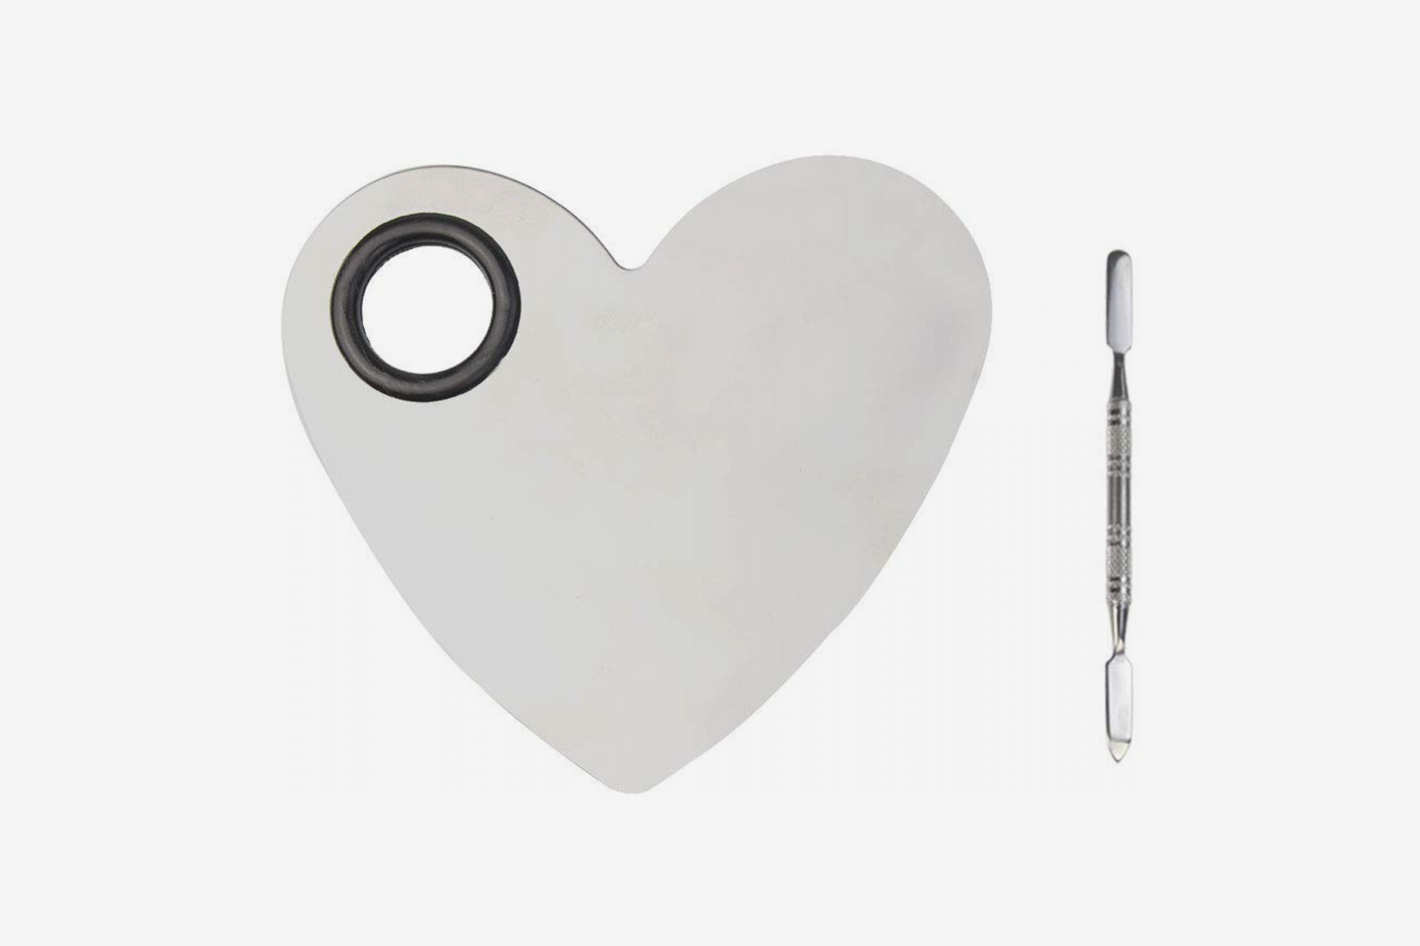 obmwang Stainless Steel Heart Shaped Makeup Palette Spatula